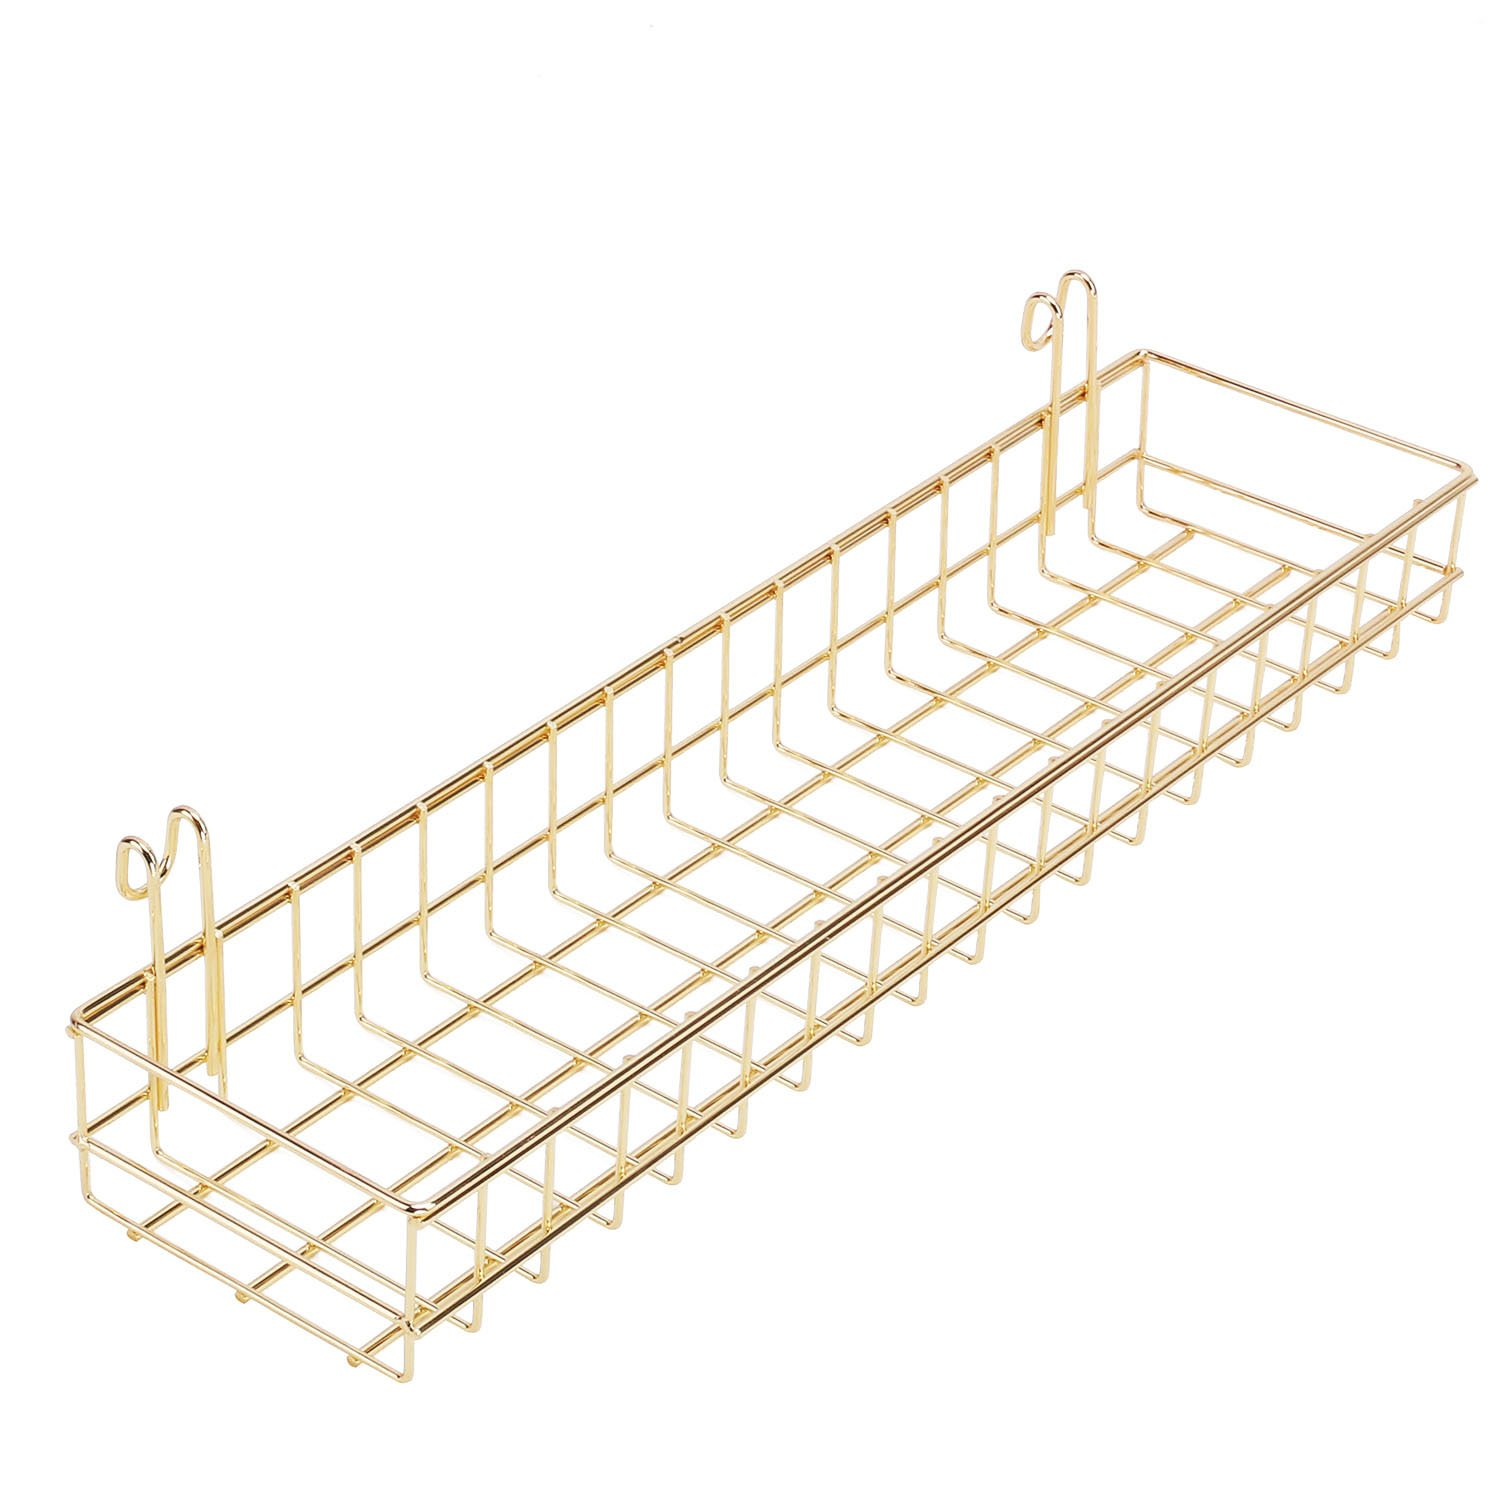 Simmer Stone Gold Hanging Basket for Wire Wall Grid Panel, Multi-functional Wall Storage Display Decoration Basket, Size 15.7'' x 3.9'' x 2''